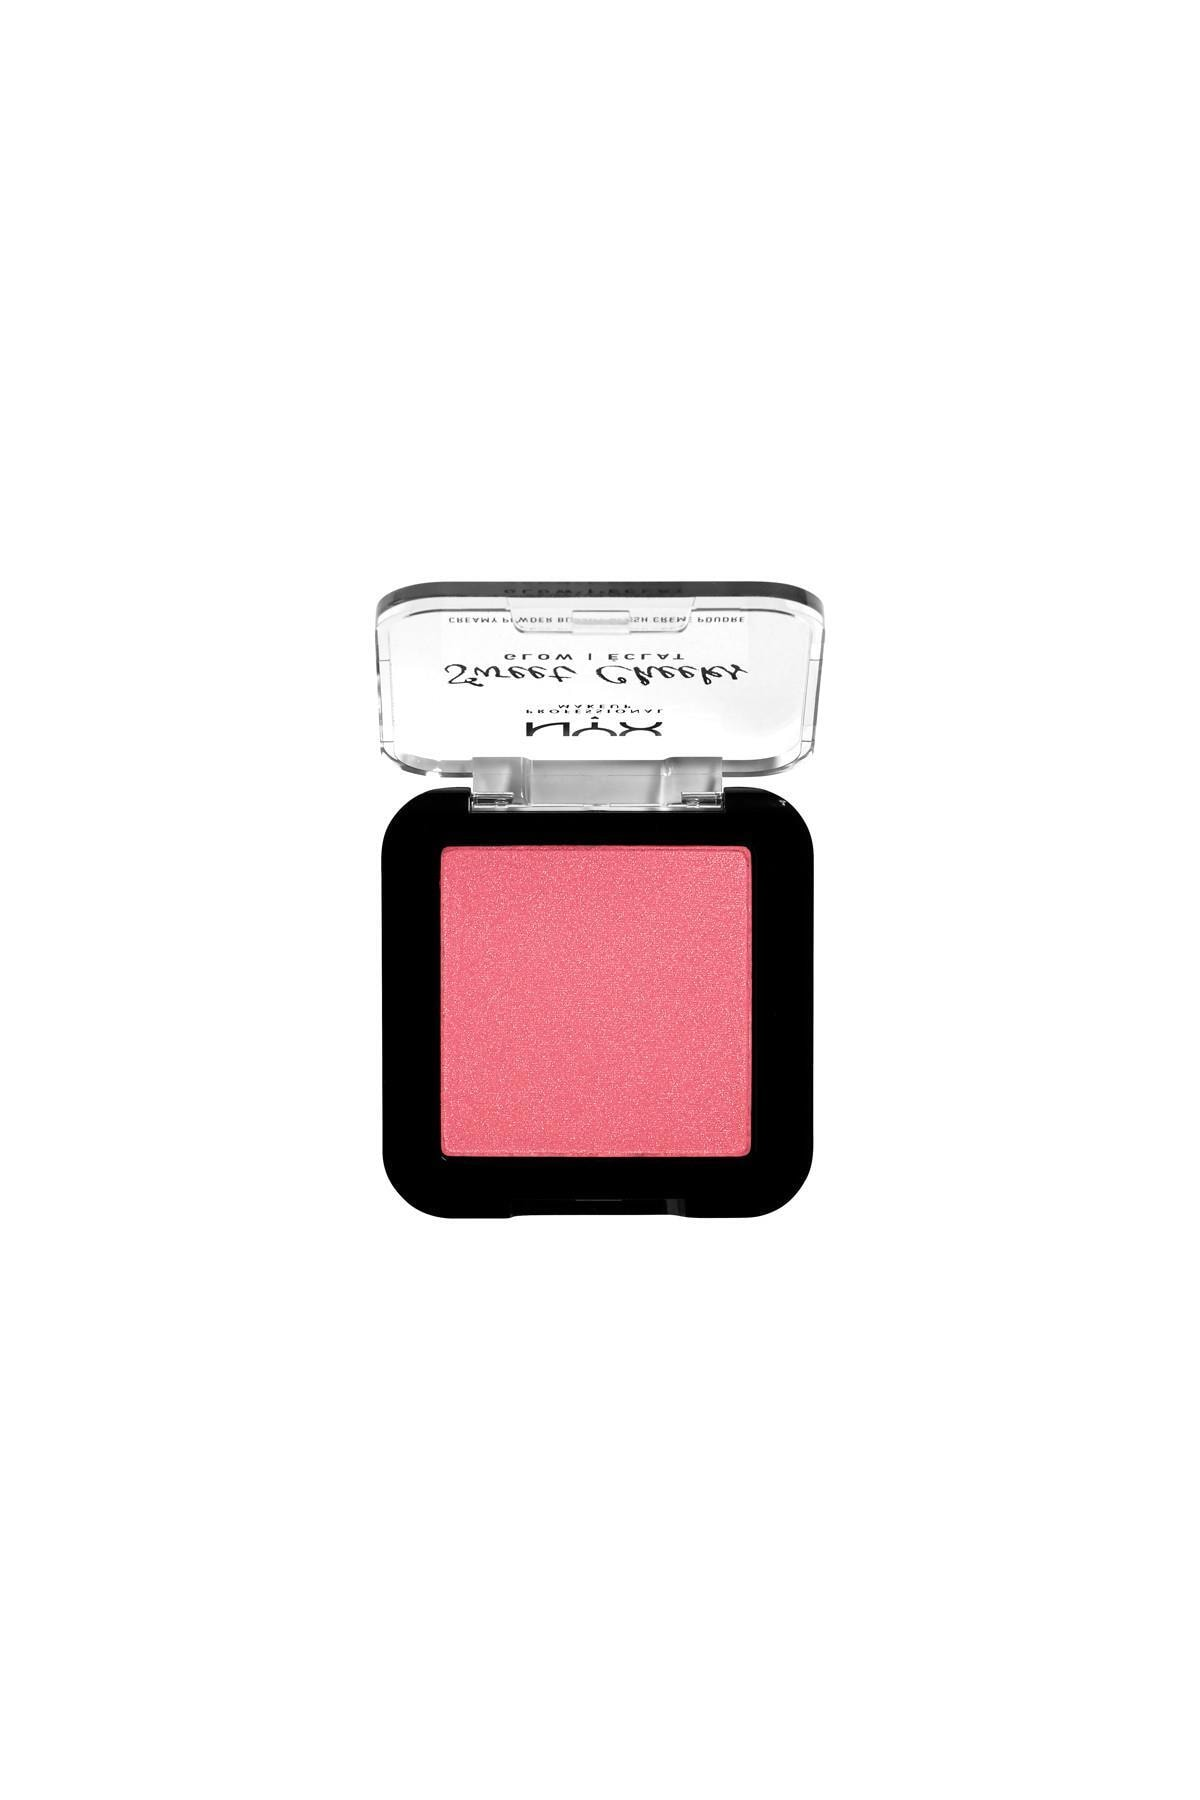 NYX Professional Makeup Işıltı Veren Allık - Sweet Cheeks Creamy Powder Blush Glow - Day Dream 800897192396